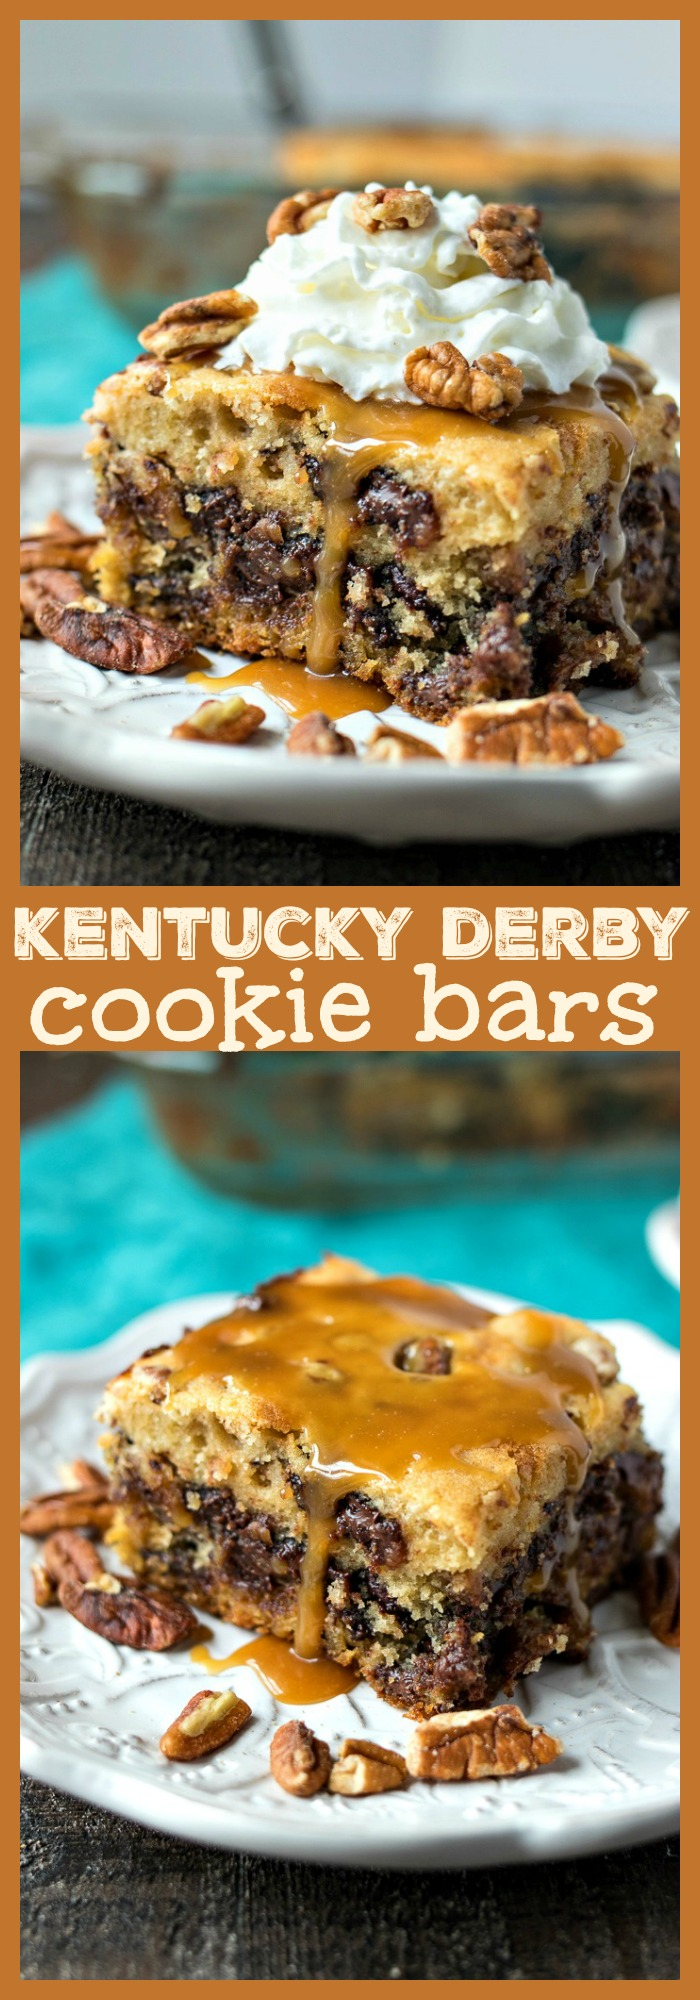 Kentucky Derby Cookie Bars photo collage